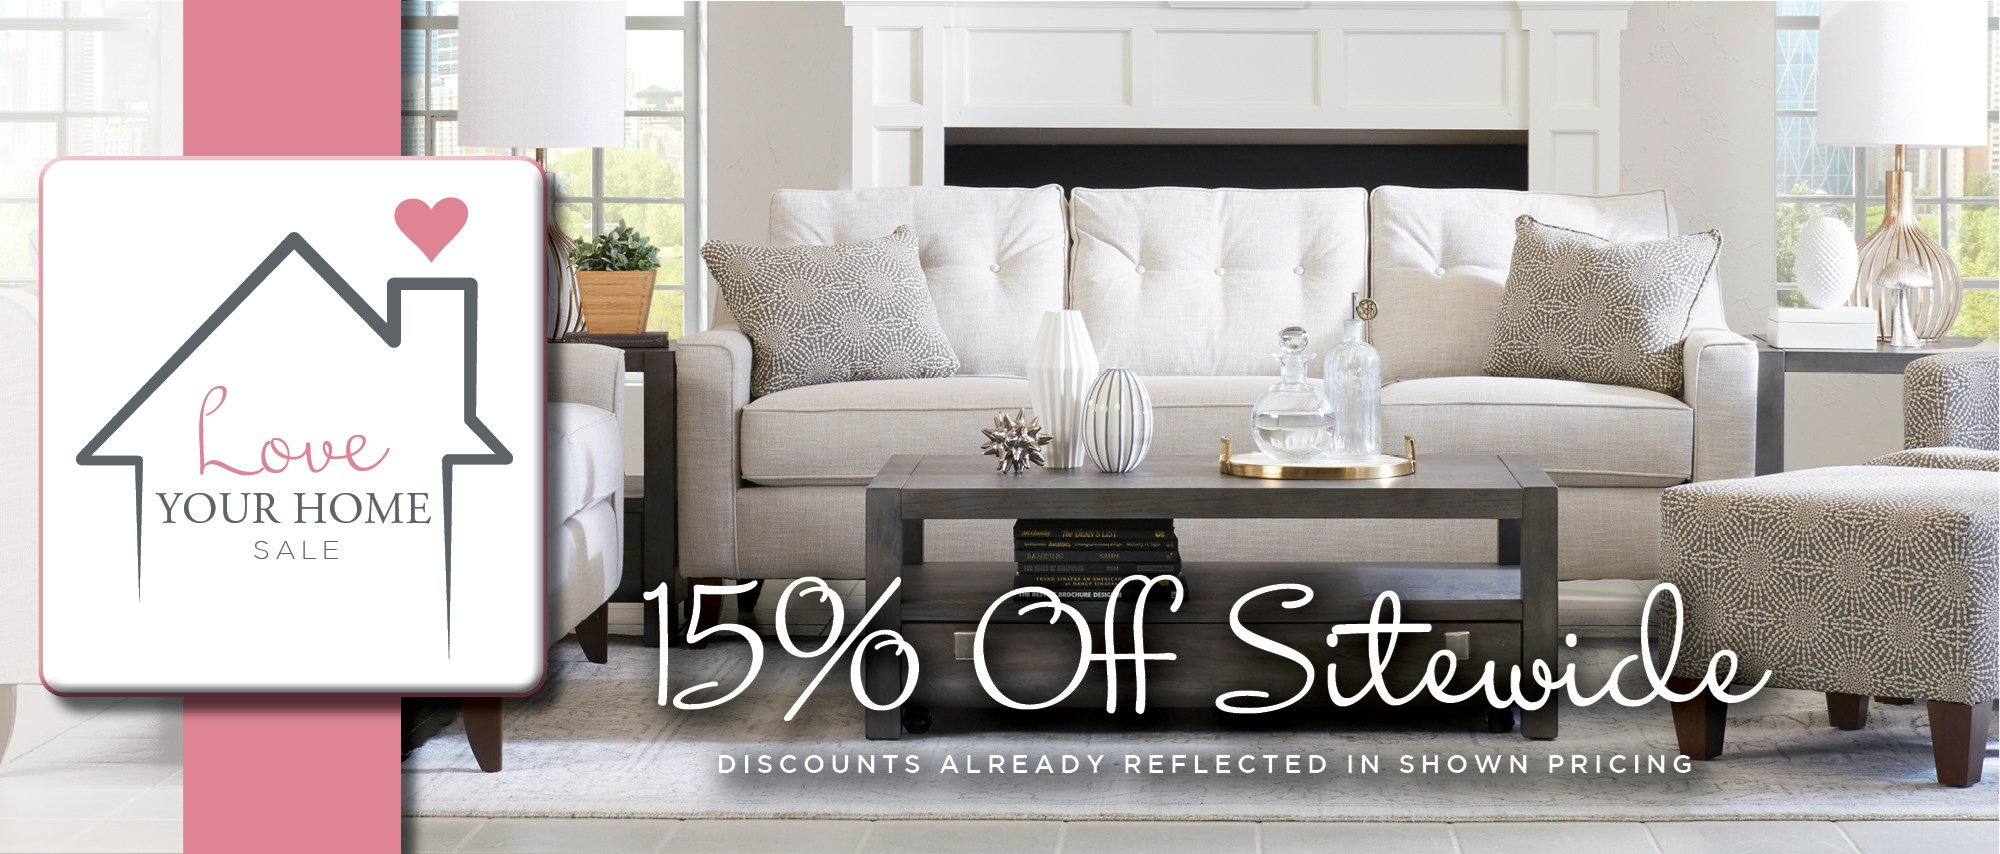 Love Your Home Sale - 15% Off Sitewide